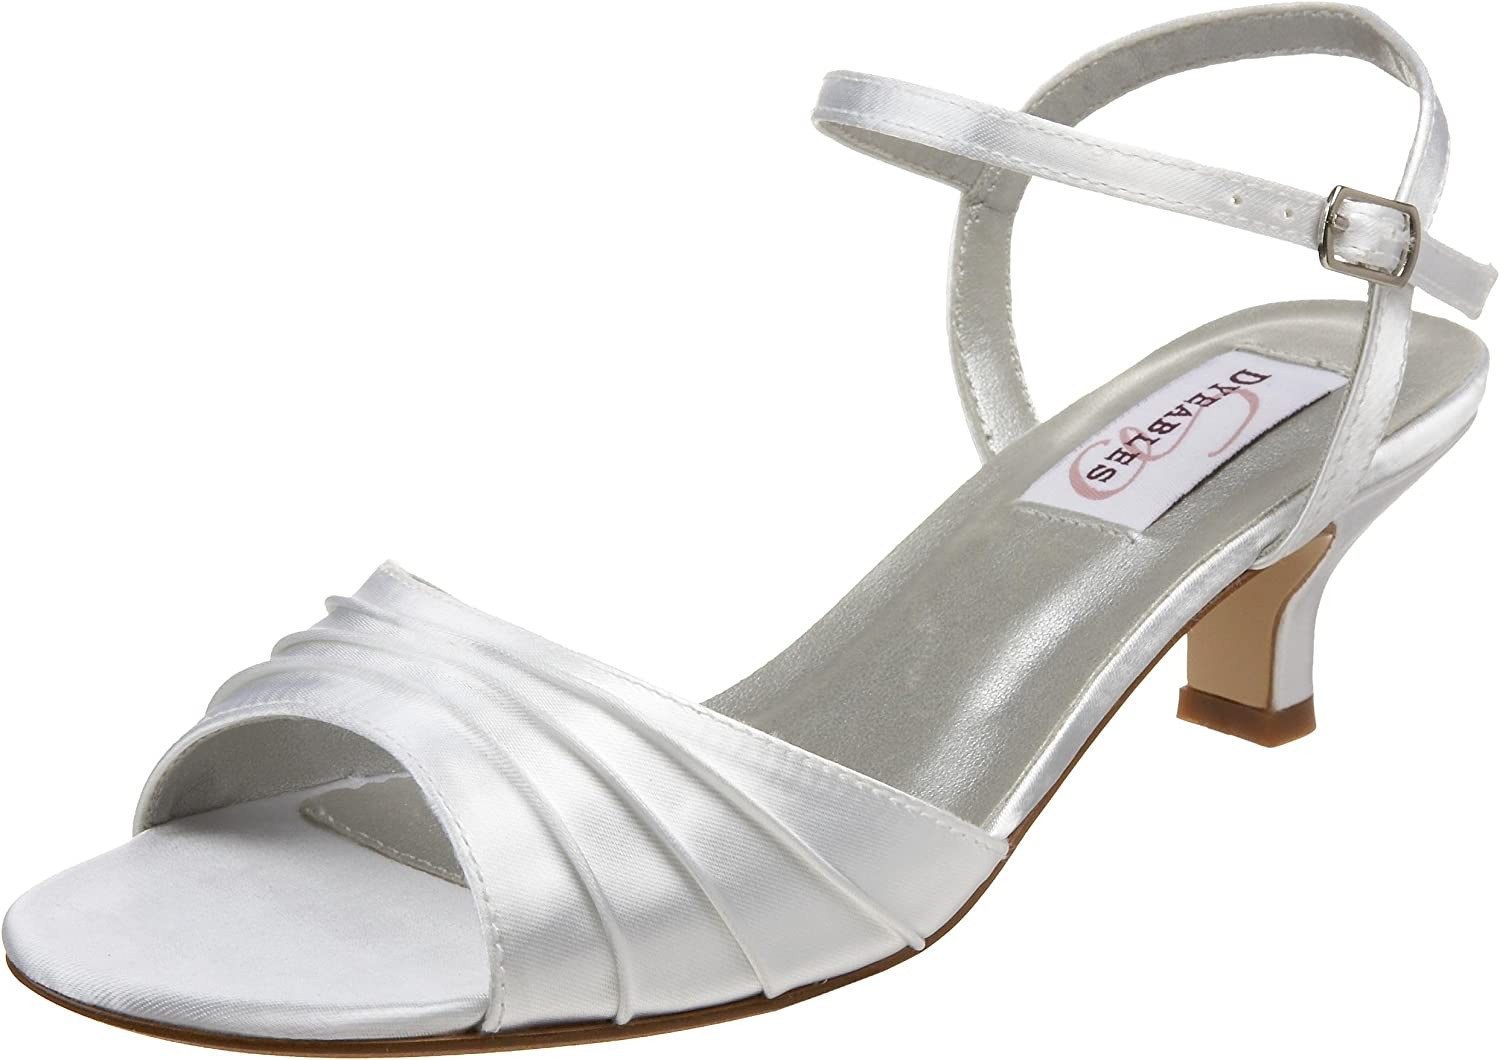 Max 88% OFF Dyeables Women's Brielle Ankle-Strap Max 67% OFF Sandal